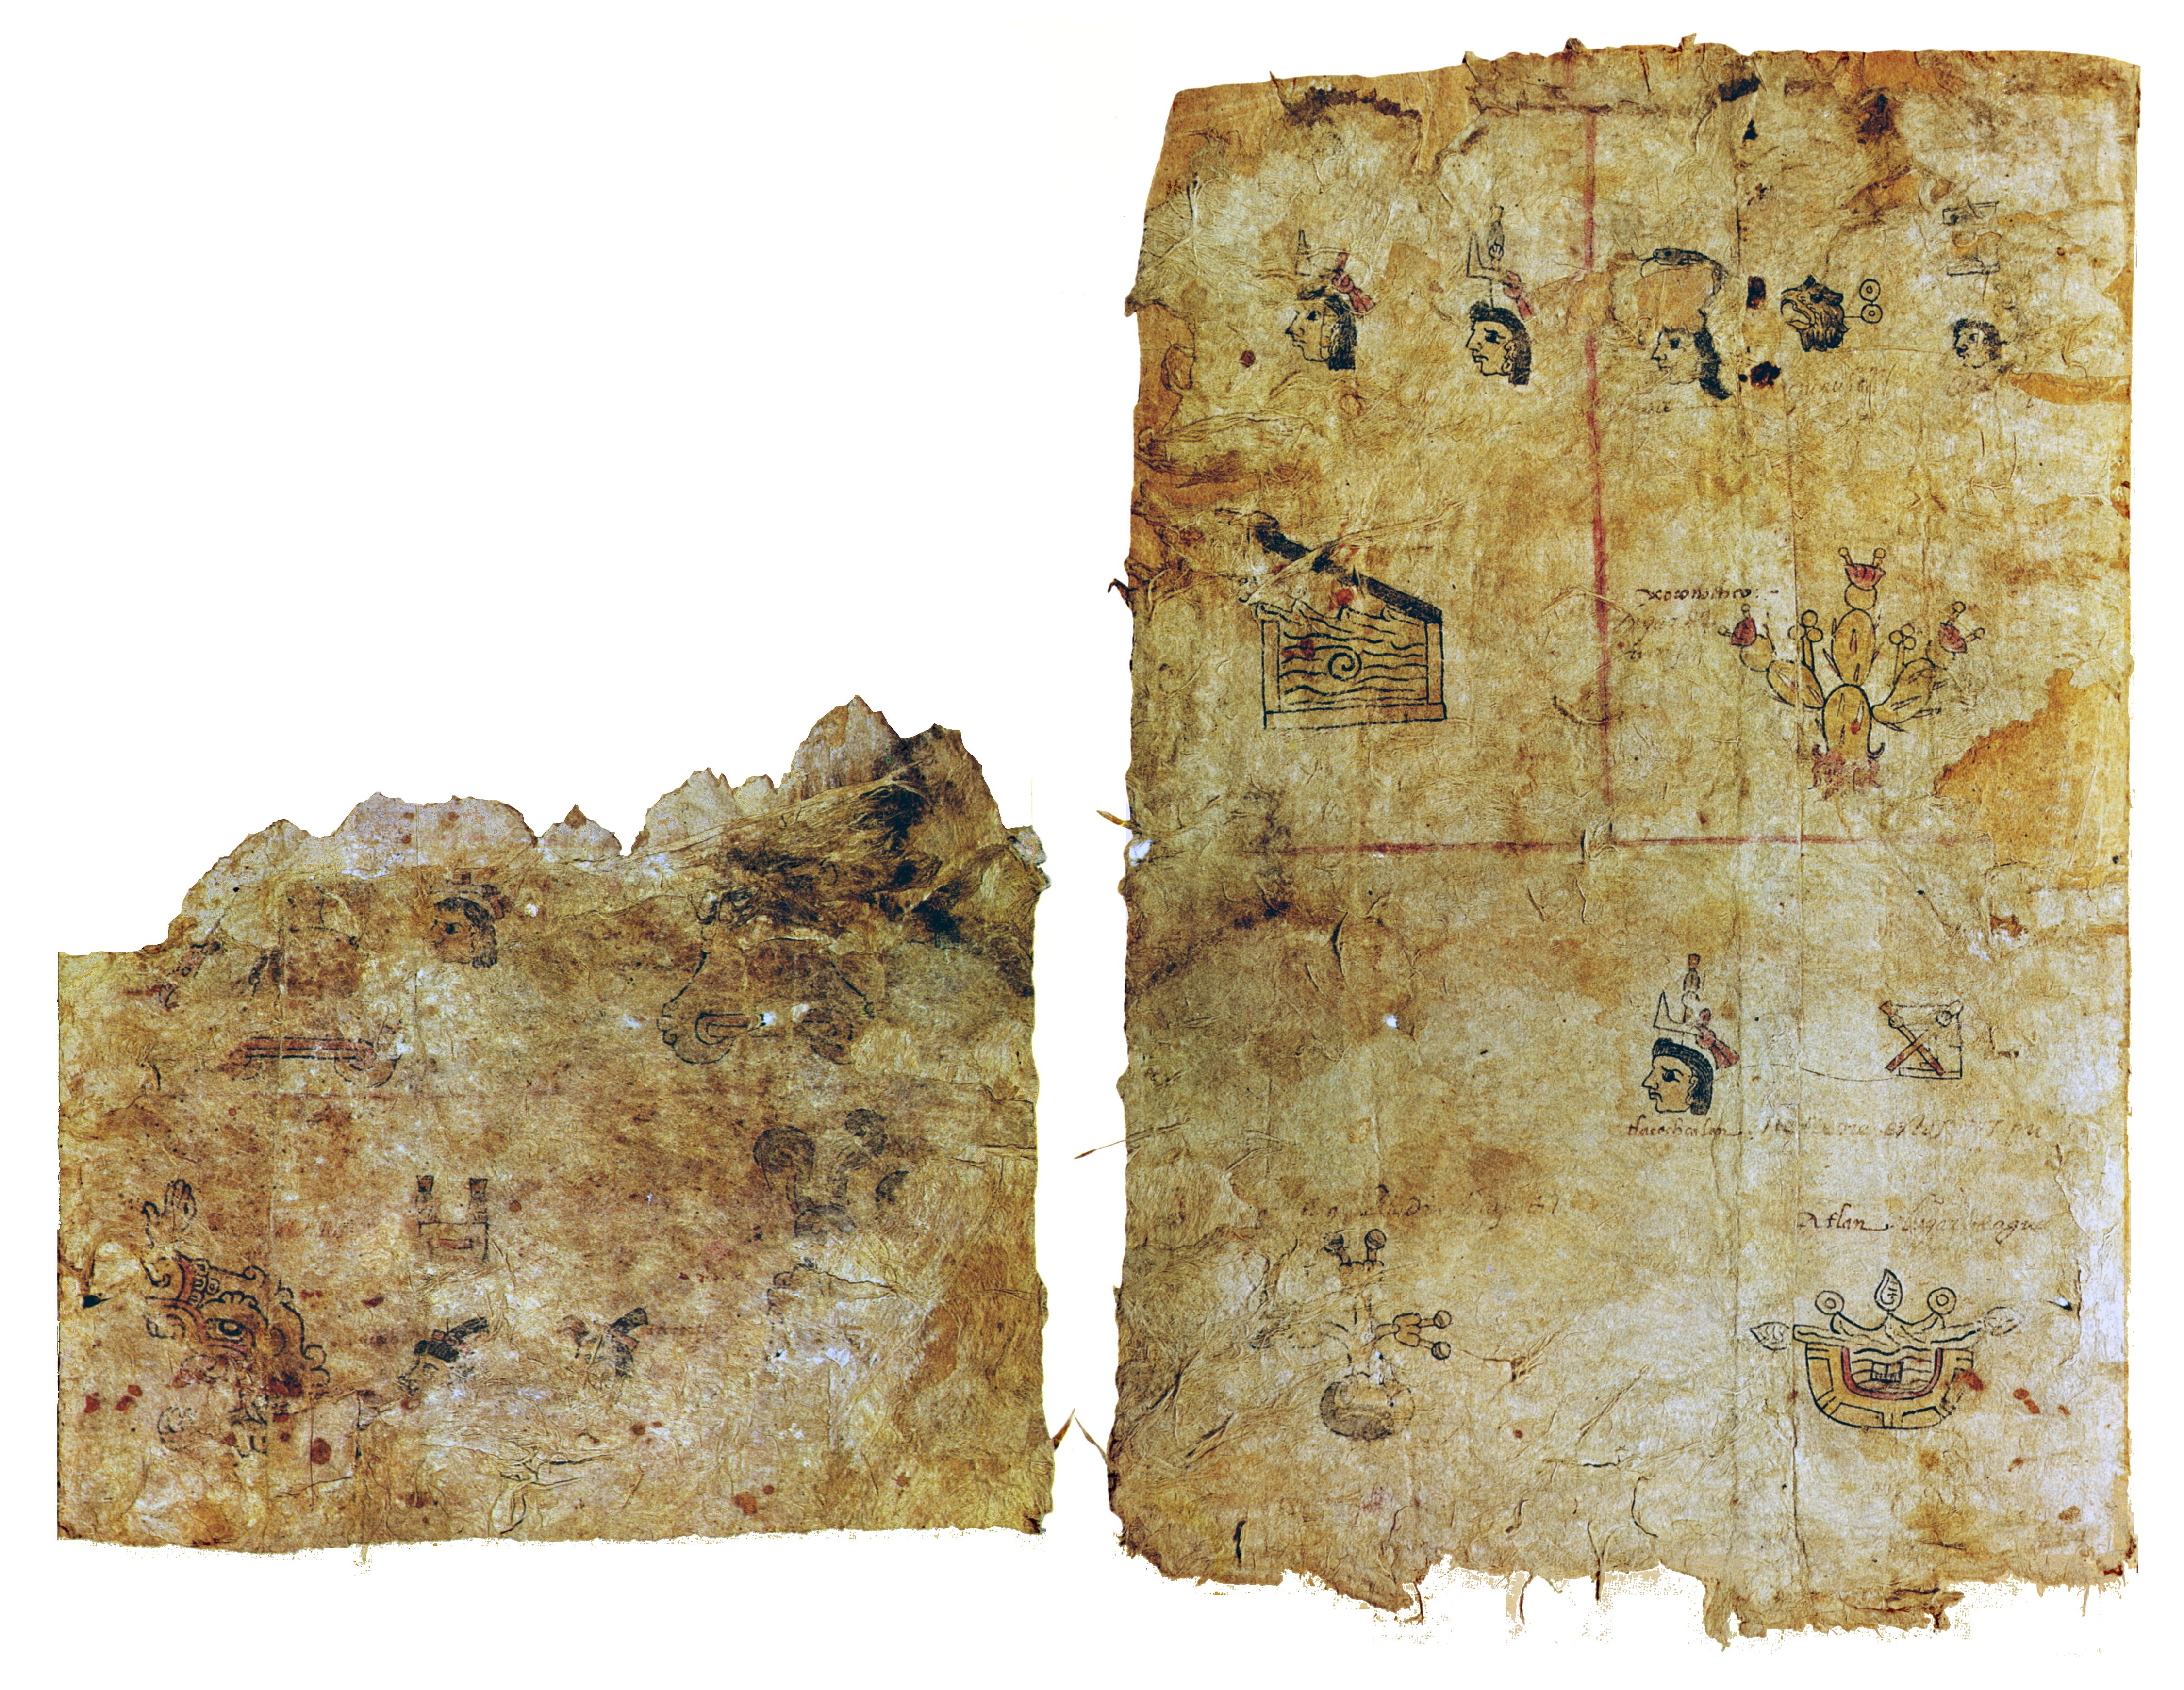 FIGURE 3. Differential damage of folio 1r (left) versus folio 1v (right).